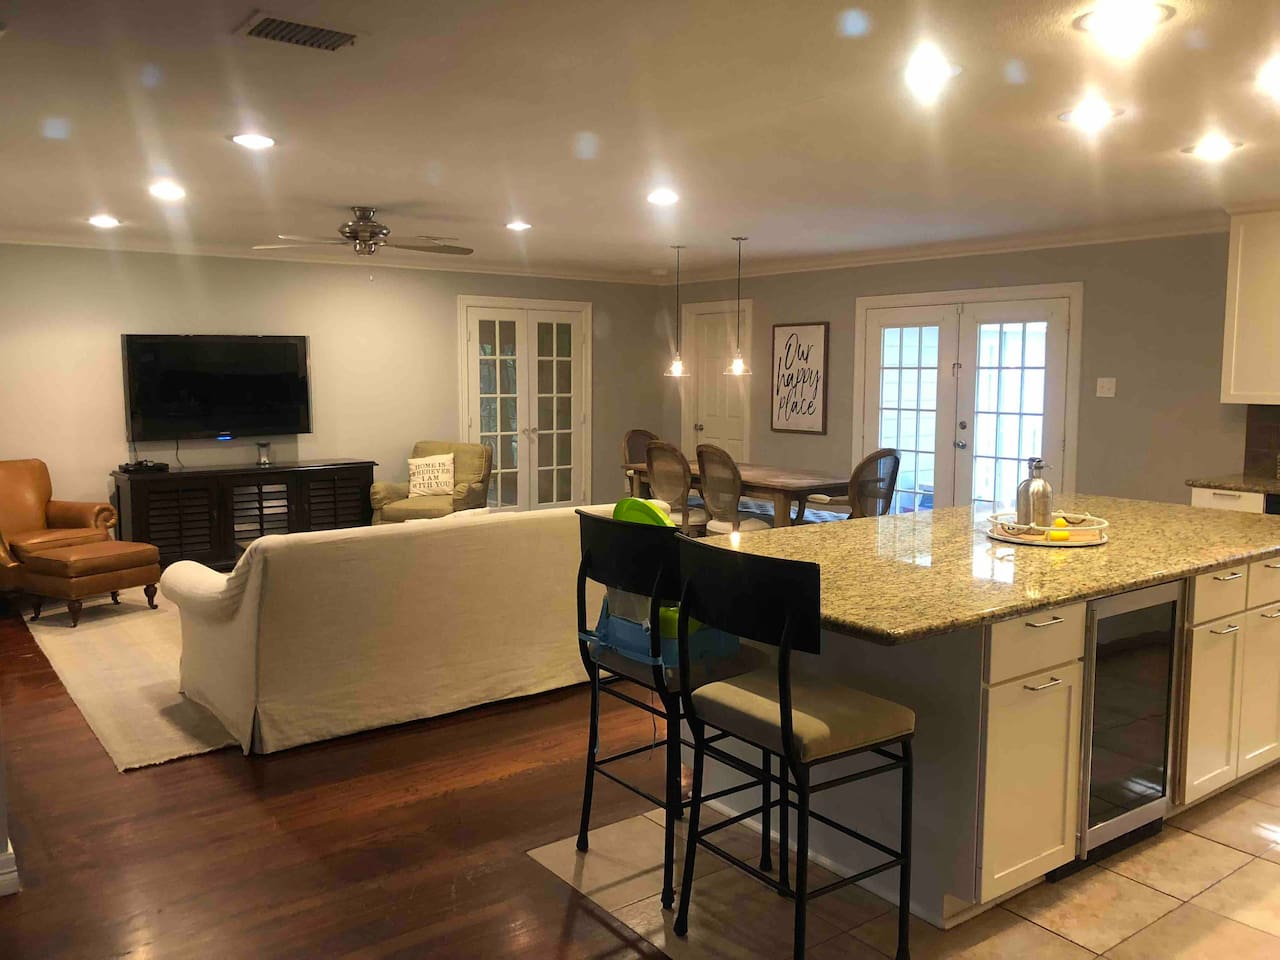 Enjoy cooking in the gourmet kitchen while having a direct view past the French doors into the movie room/playroom.